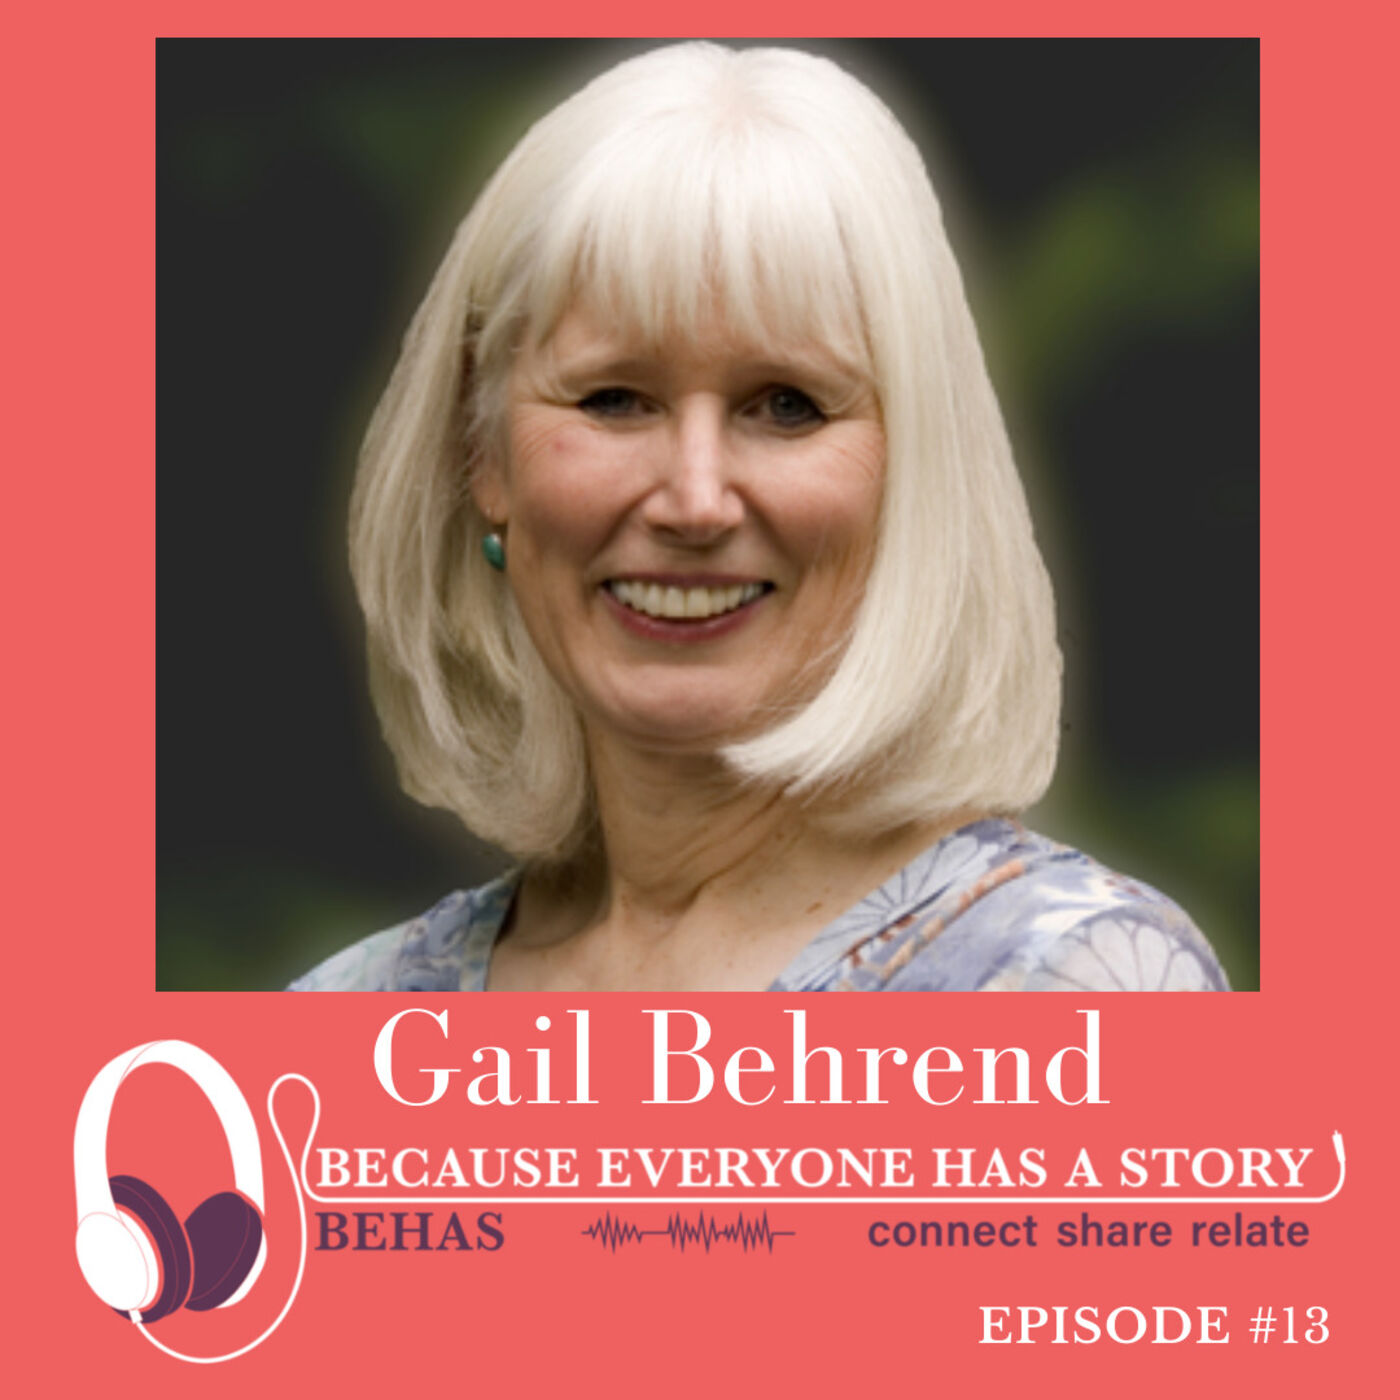 #13 - From a Successful Engineer to Passionate Energy Healer - Gail Christel Behrend